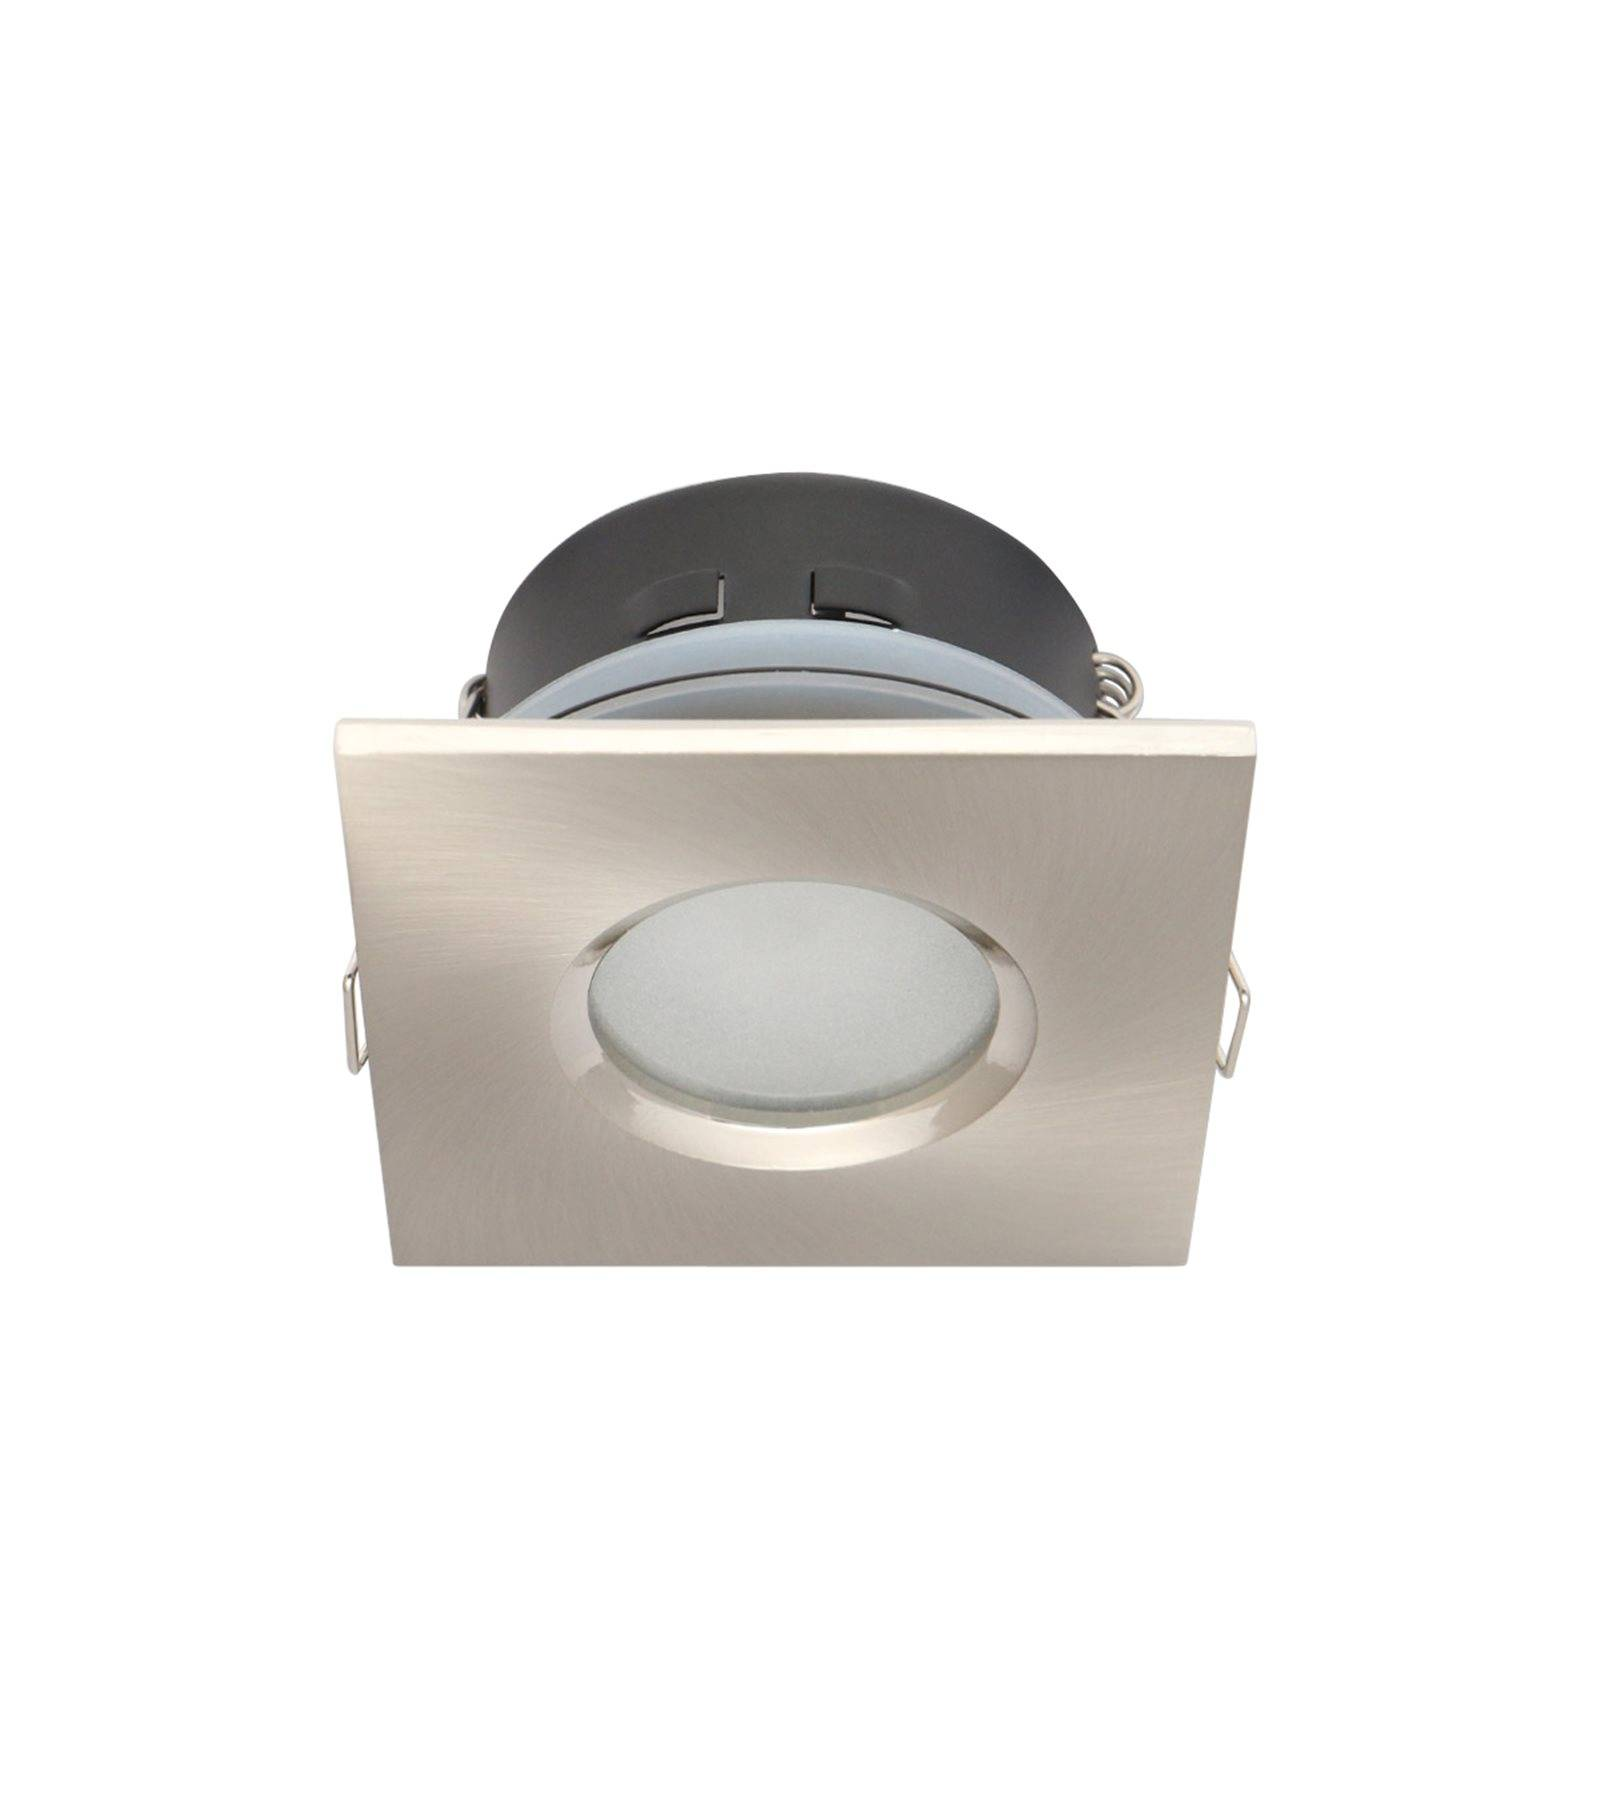 Spot encastrable salle de bain nickel satin carr gu5 3 for Spot led etanche salle de bain